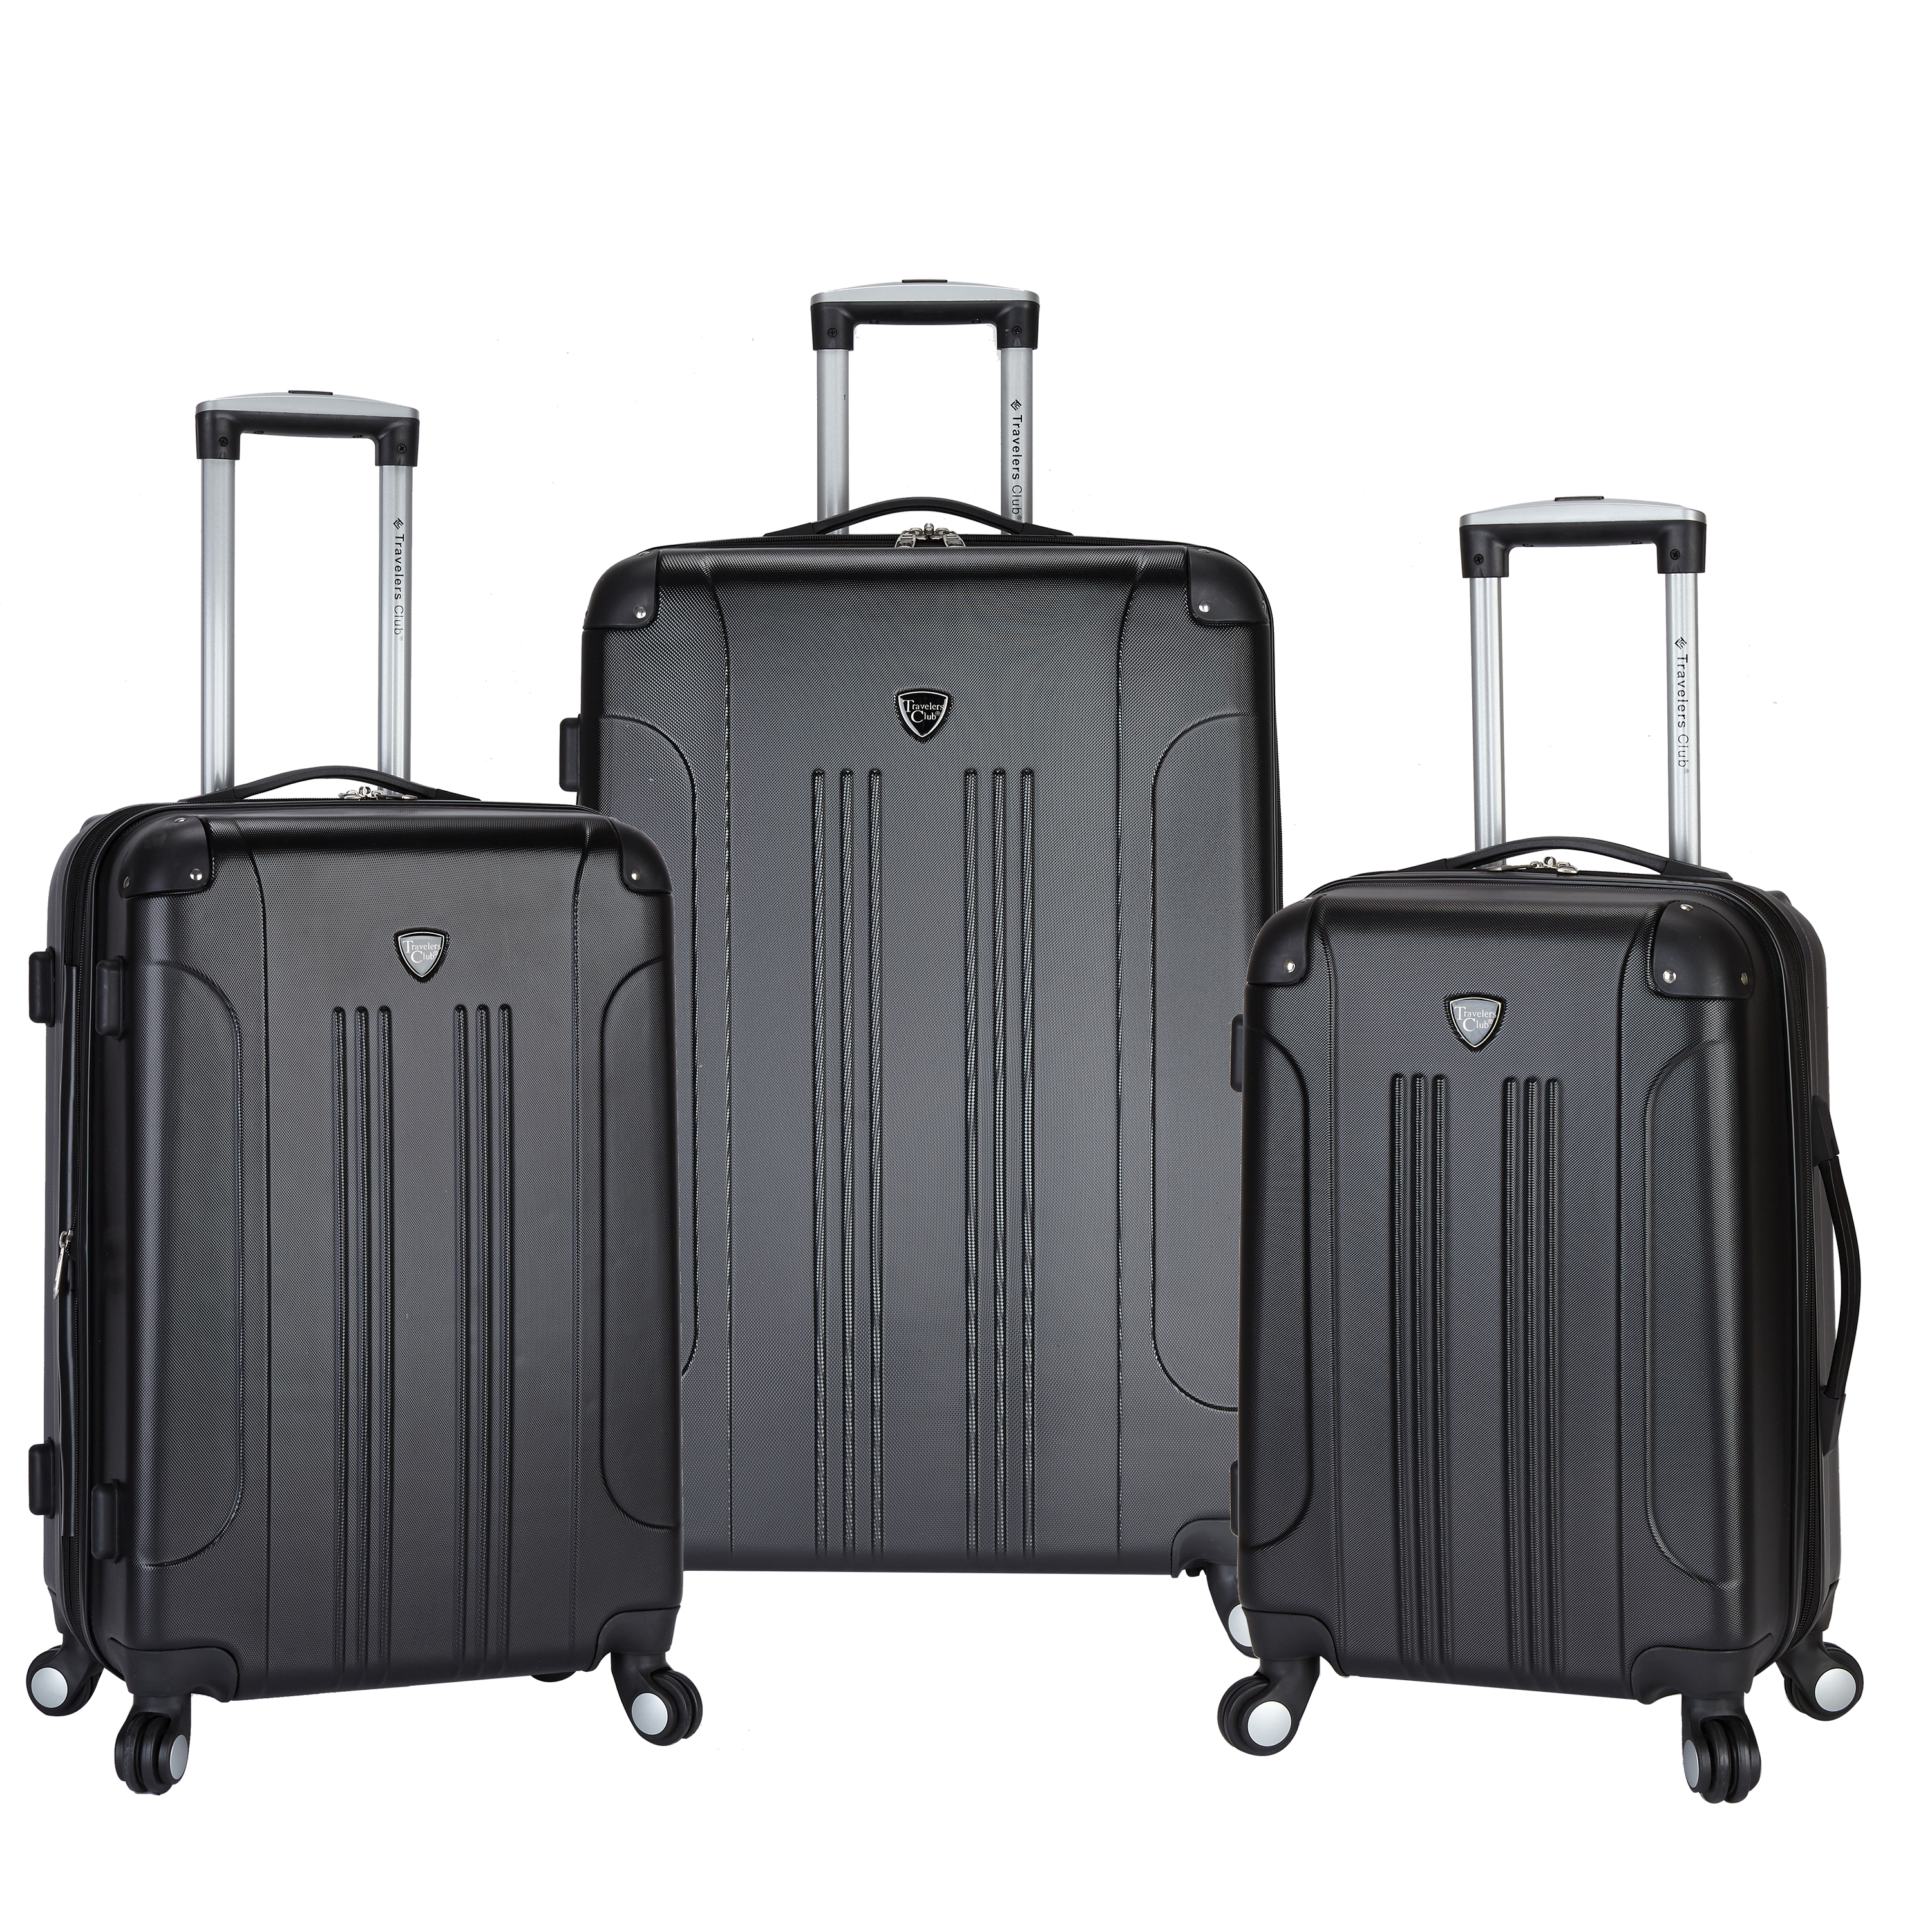 Travelers Club 3 pc. Expandable hard-side luggage set by Travelers Club